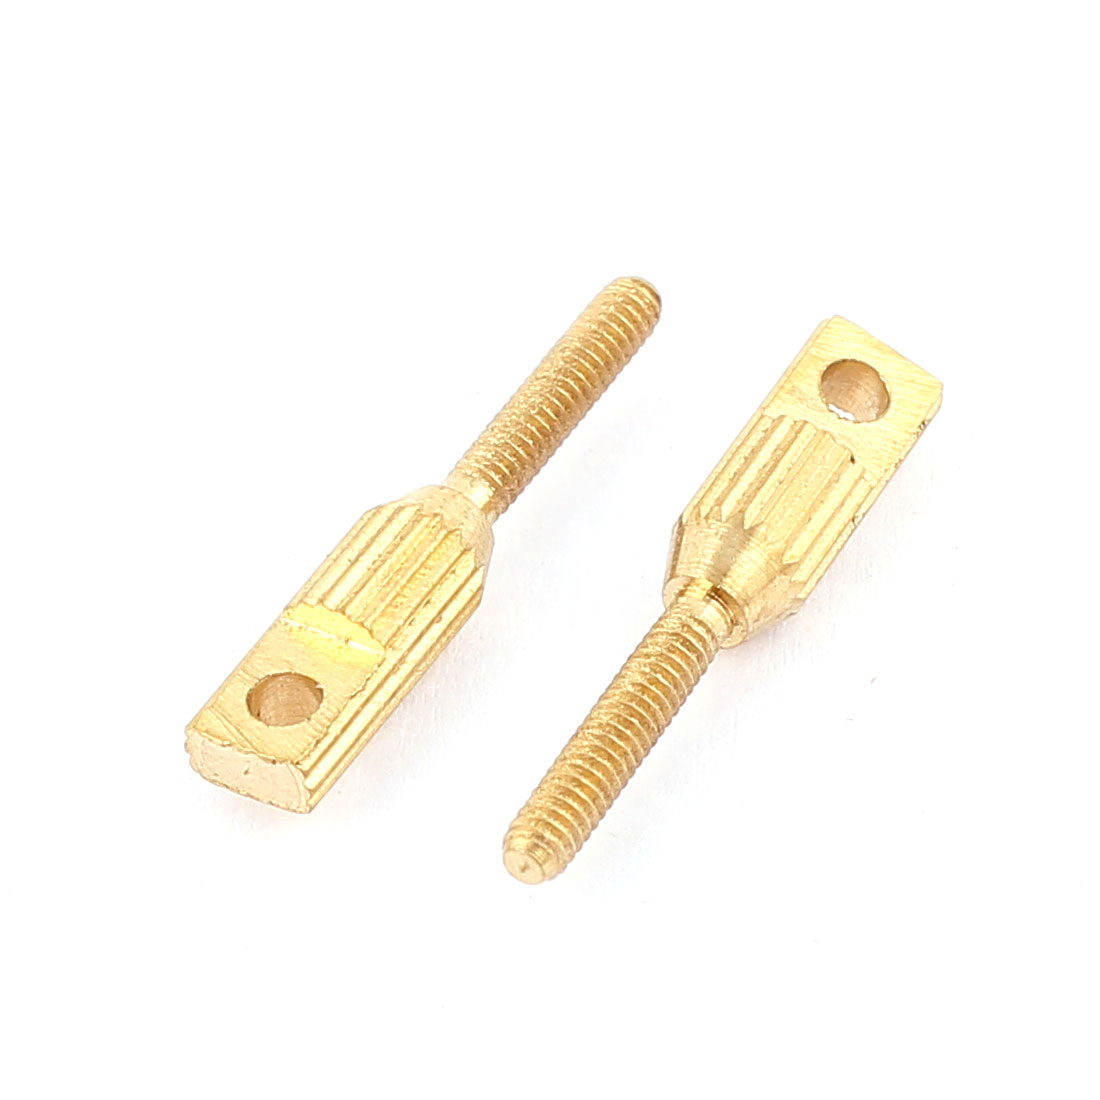 2pcs RC Model Aircraft 2mm Hole Dia M2 x L20mm Long Flat Head Close Loop Extender